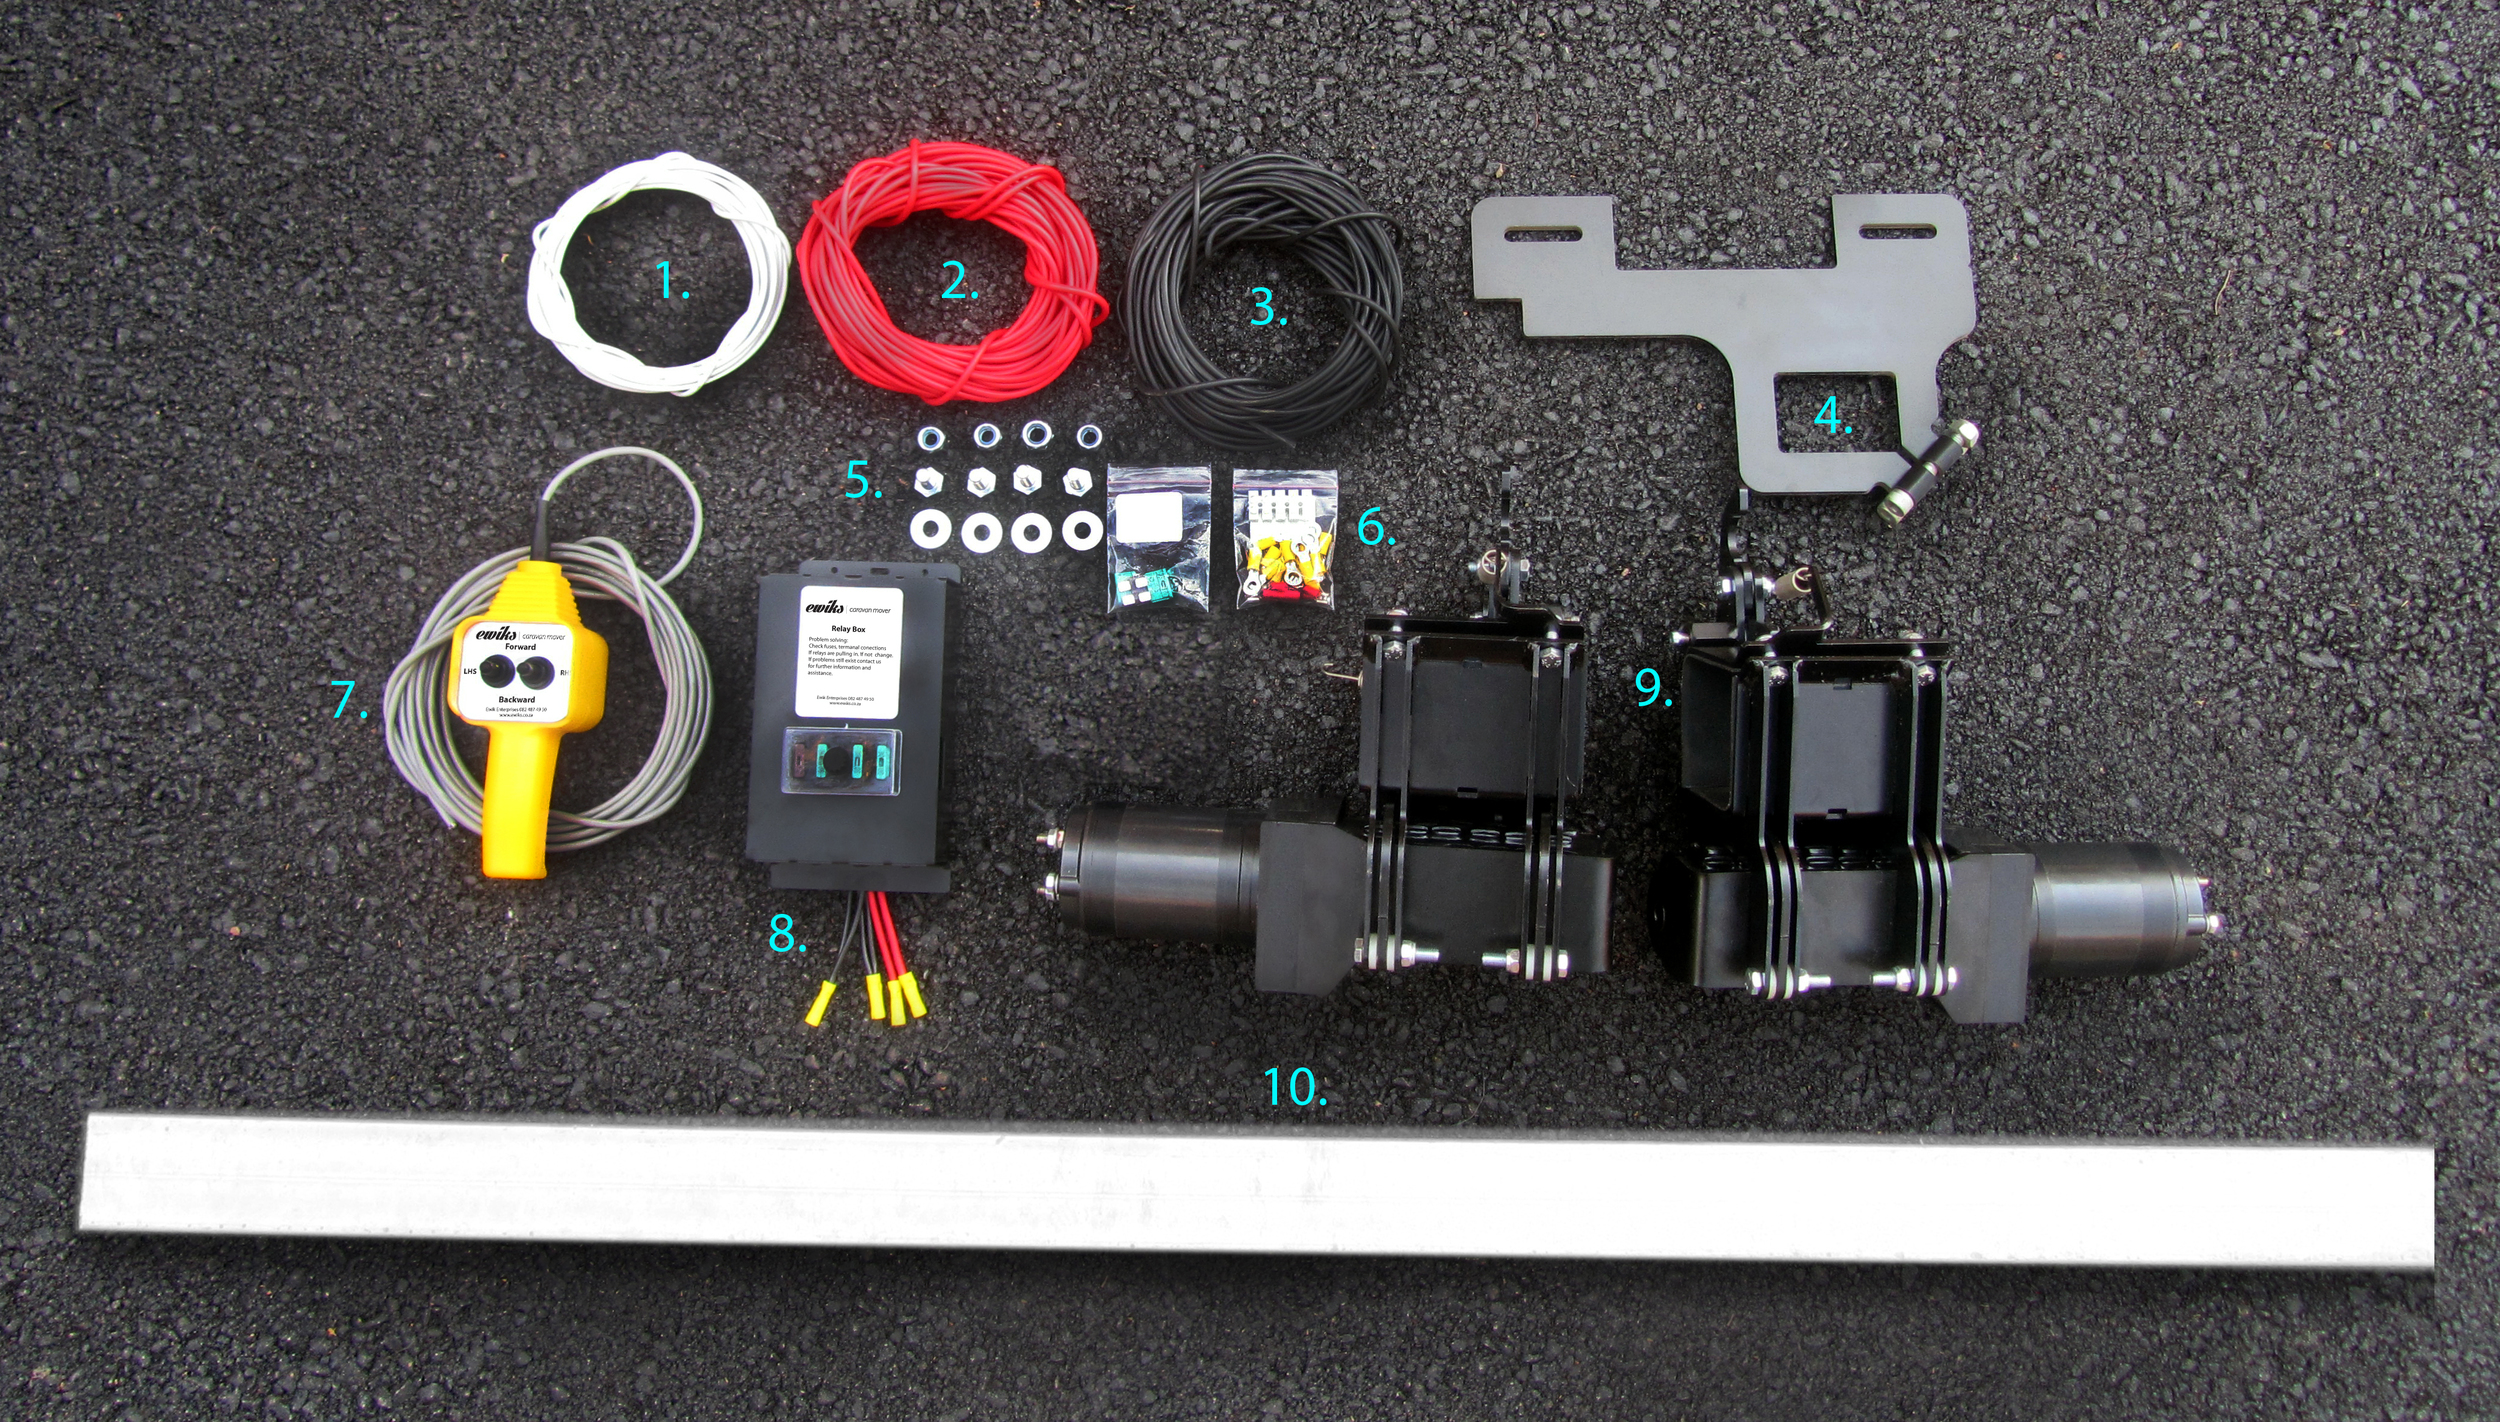 Typical DIY Kit:   (Click to enlarge)  1. Control wire (6 core)  2. and 3. Panel Wire (4mm)  4. Hanger brackets  5. Nuts, bolts and washers  6. Terminals, conector stip and spare fuses.  7. Control pendant (5m trailing cable)  8. Relay Box / Fuse Box  9. Motor gearbox assembles  10. Mounting tube